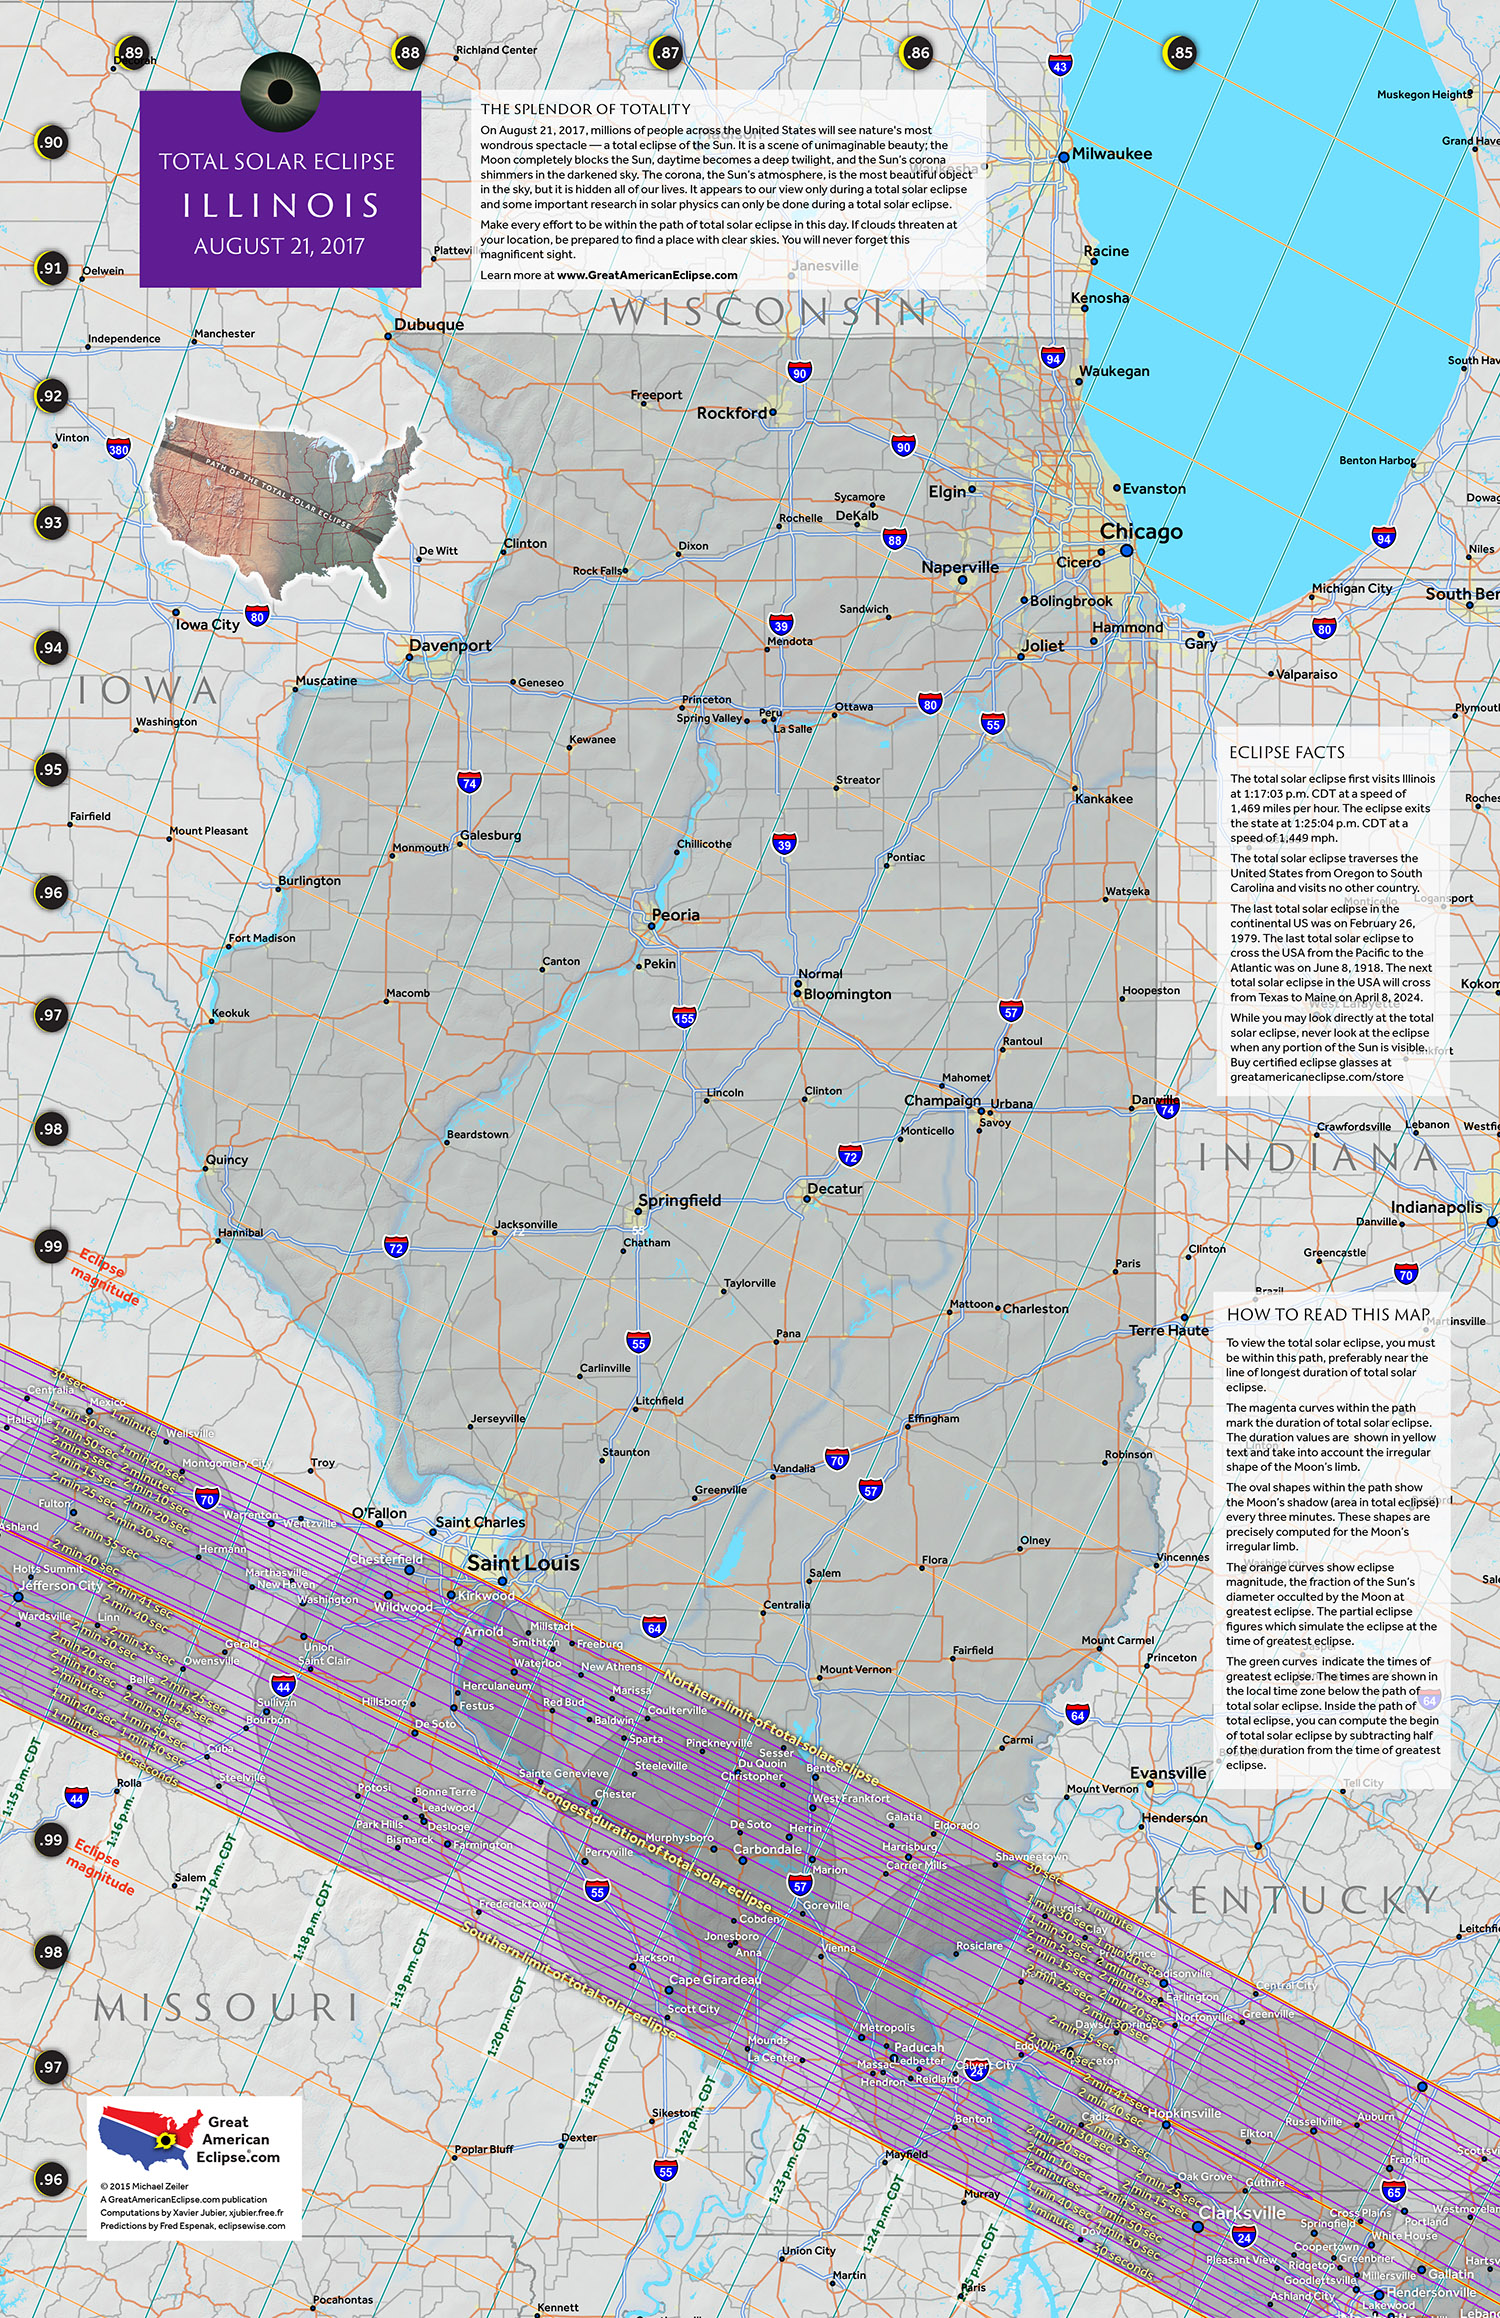 Illinois eclipse Total solar eclipse of Aug 21 2017